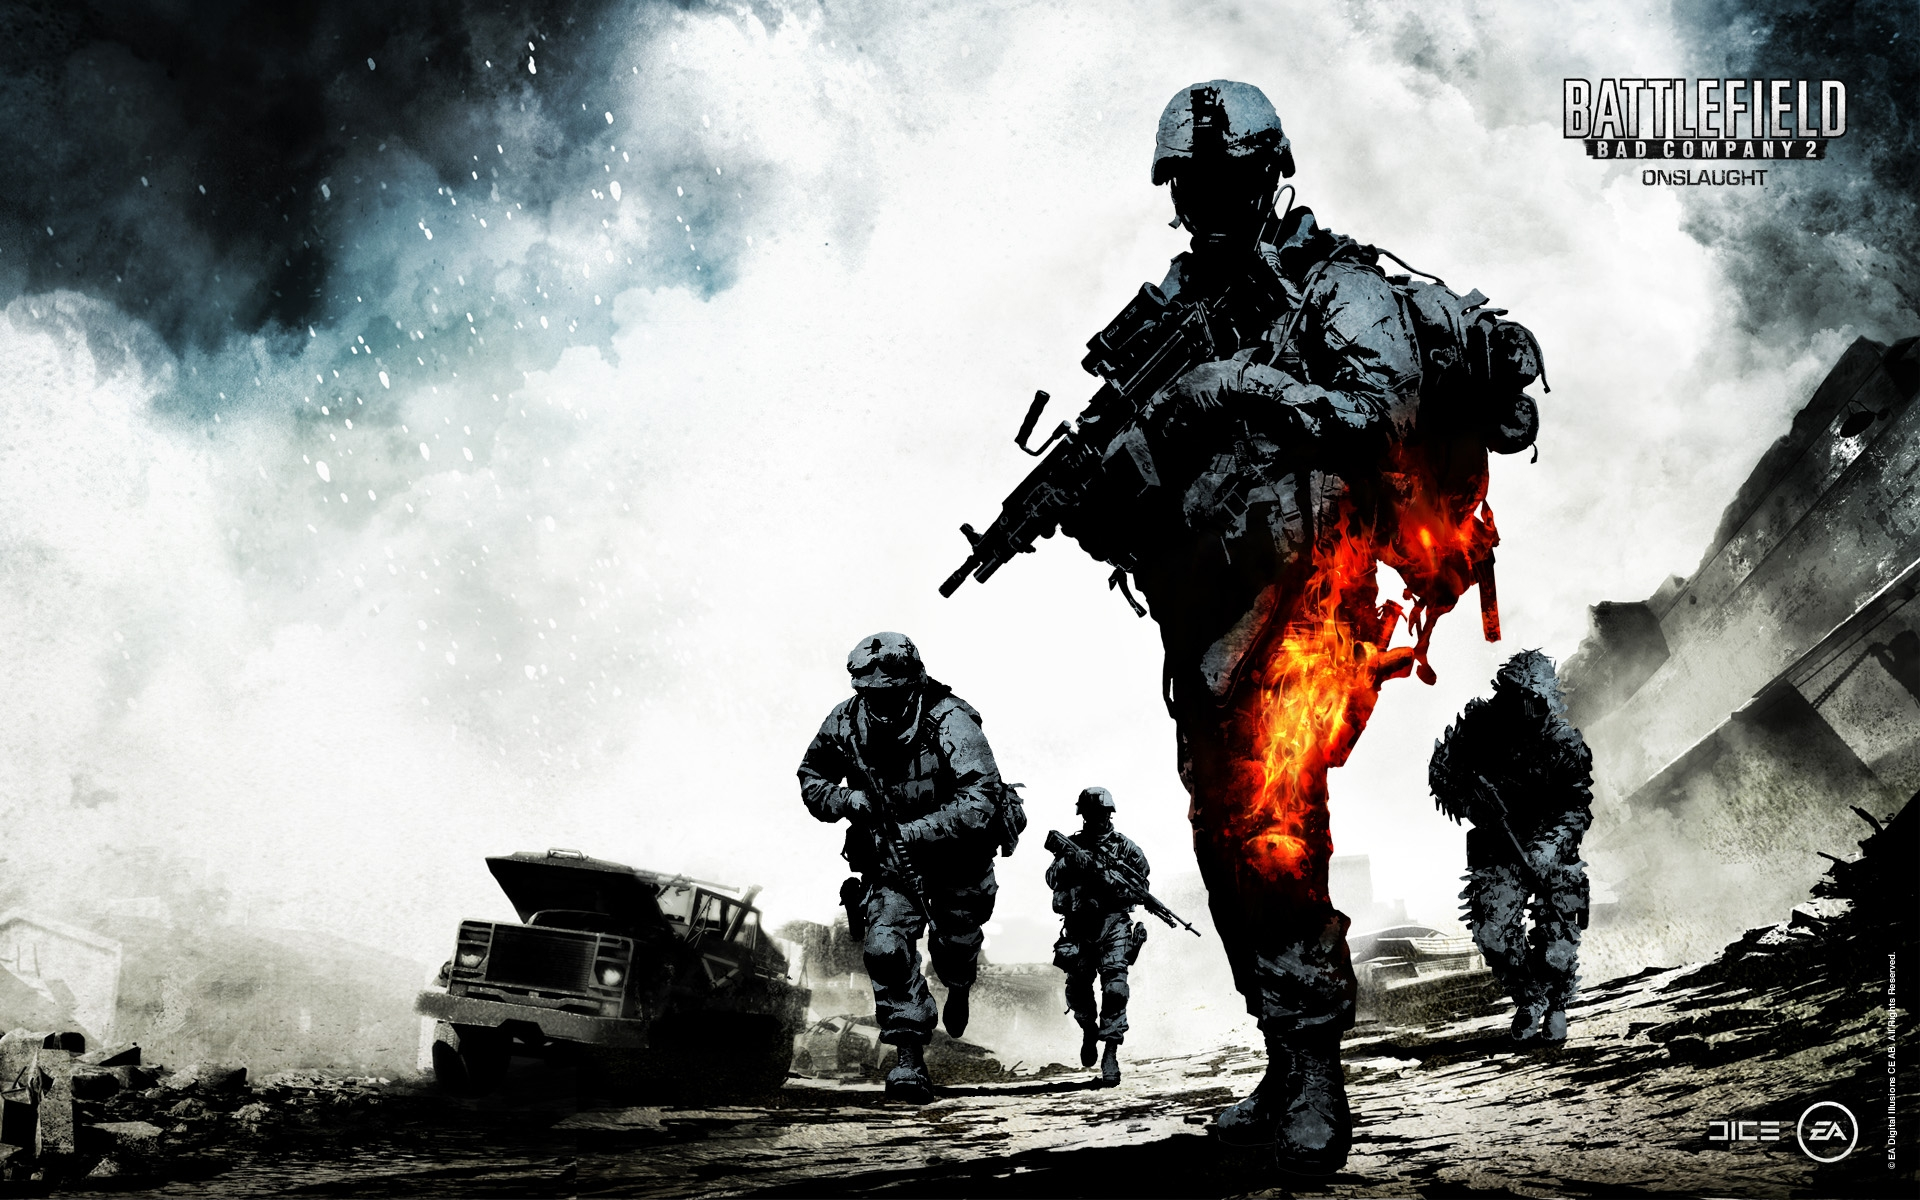 Company 4k Wallpapers For Your Desktop Or Mobile Screen Free And